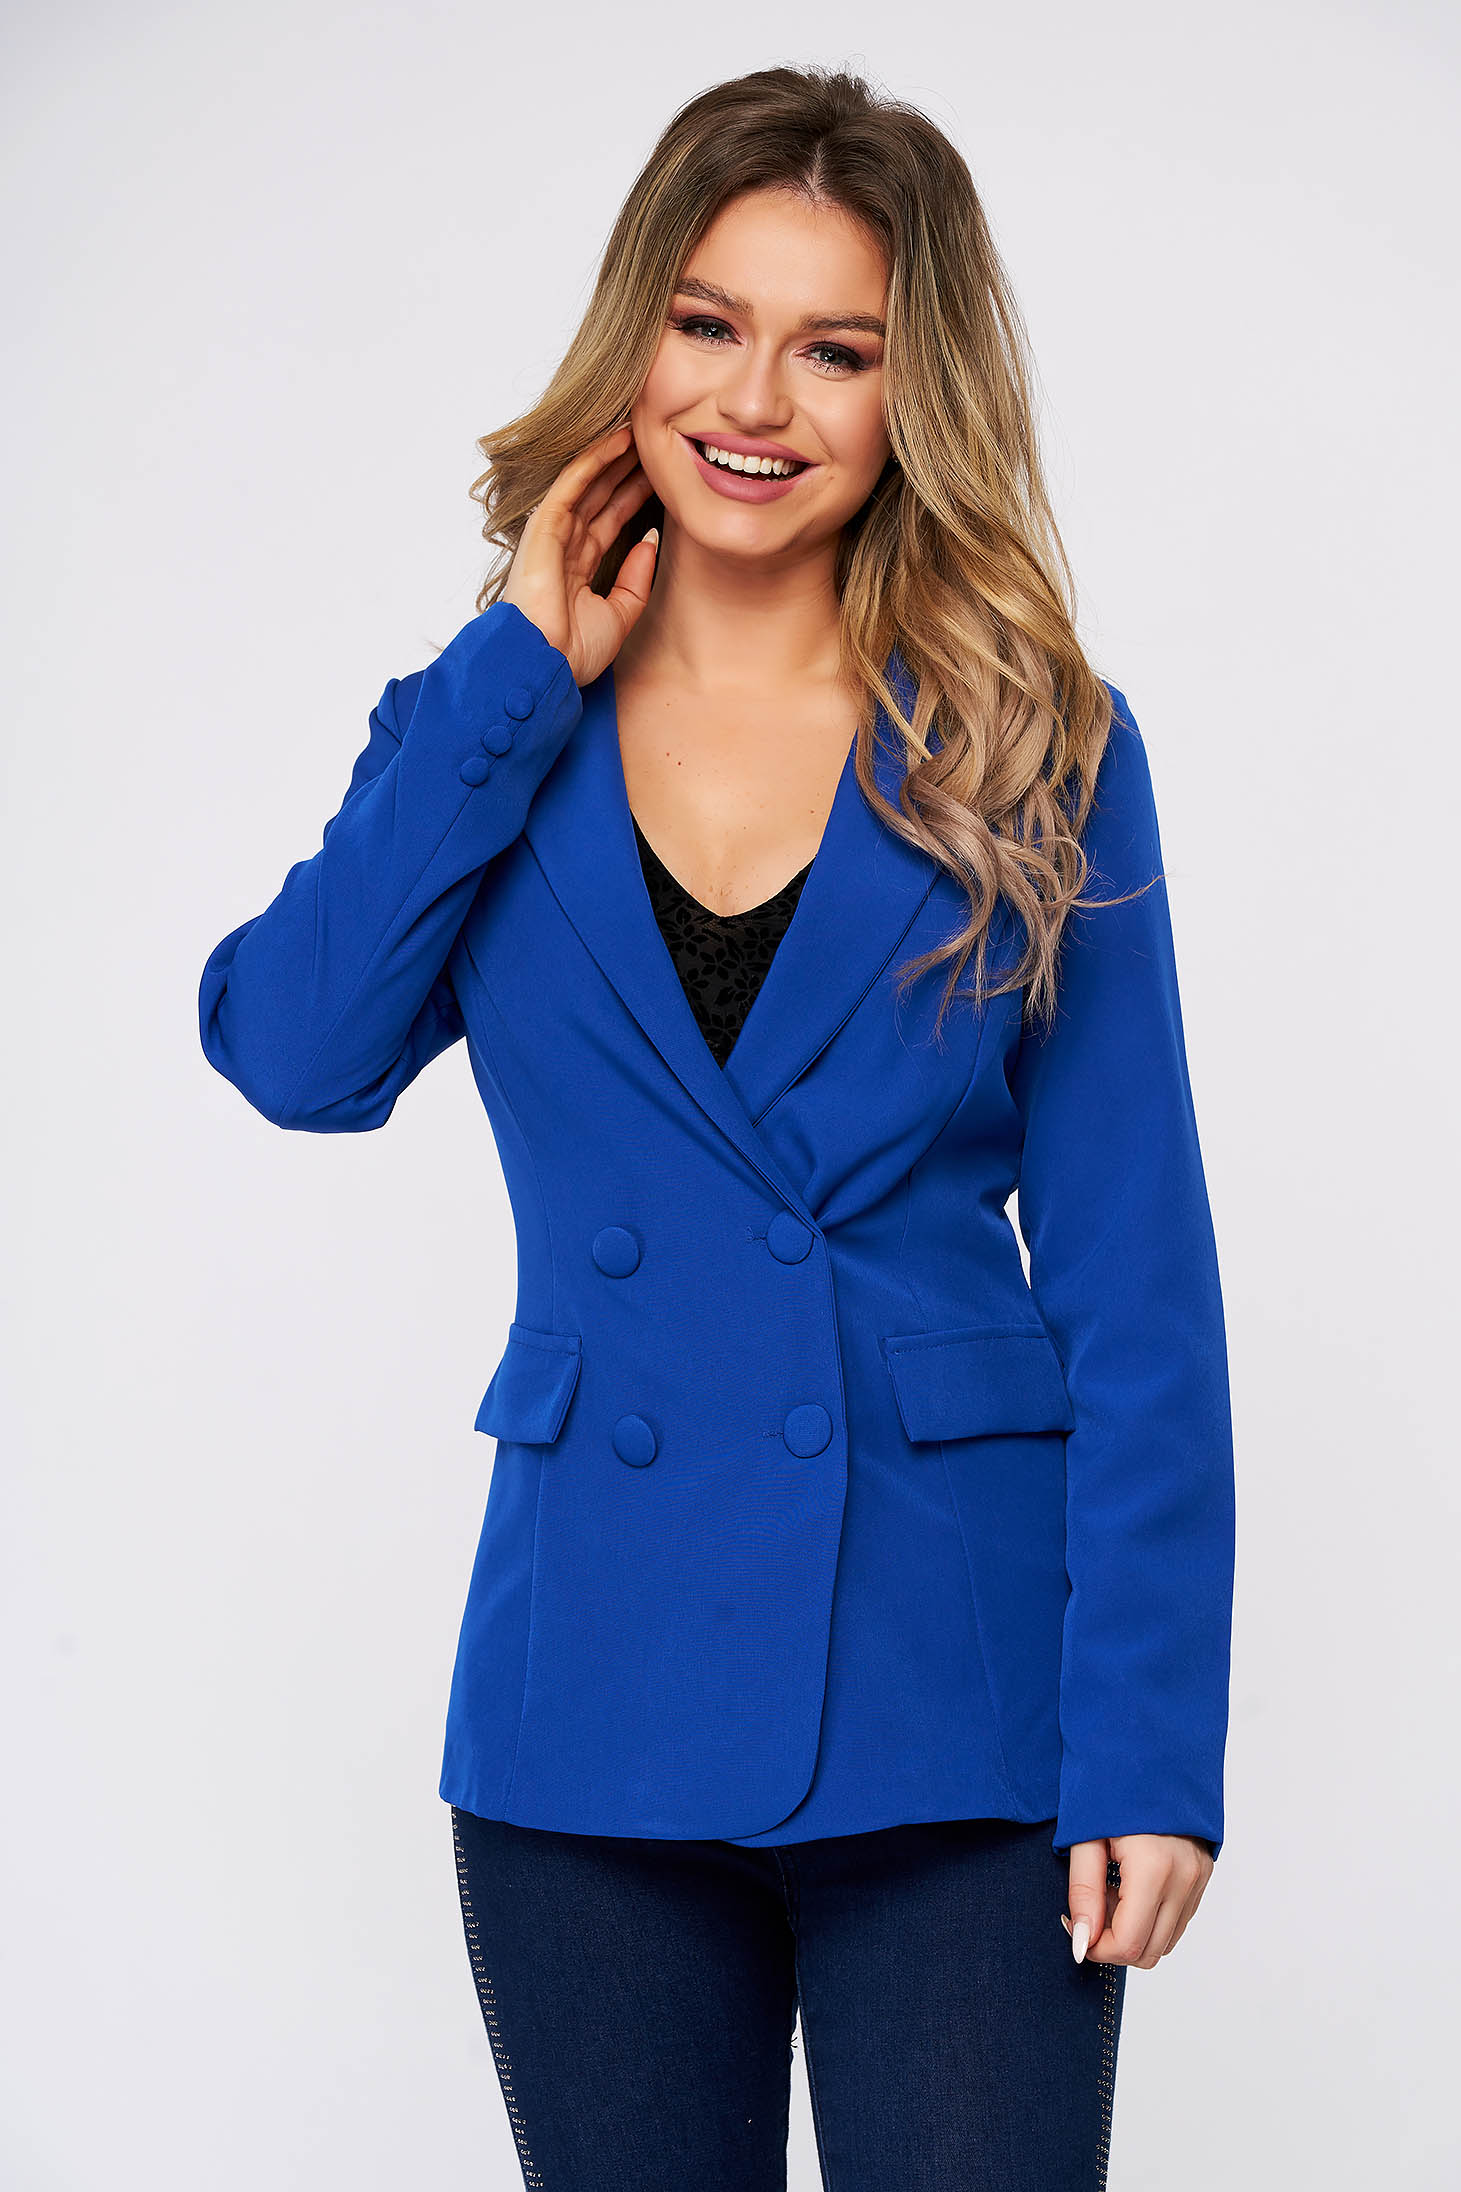 Blue jacket classical arched cut cloth with inside lining